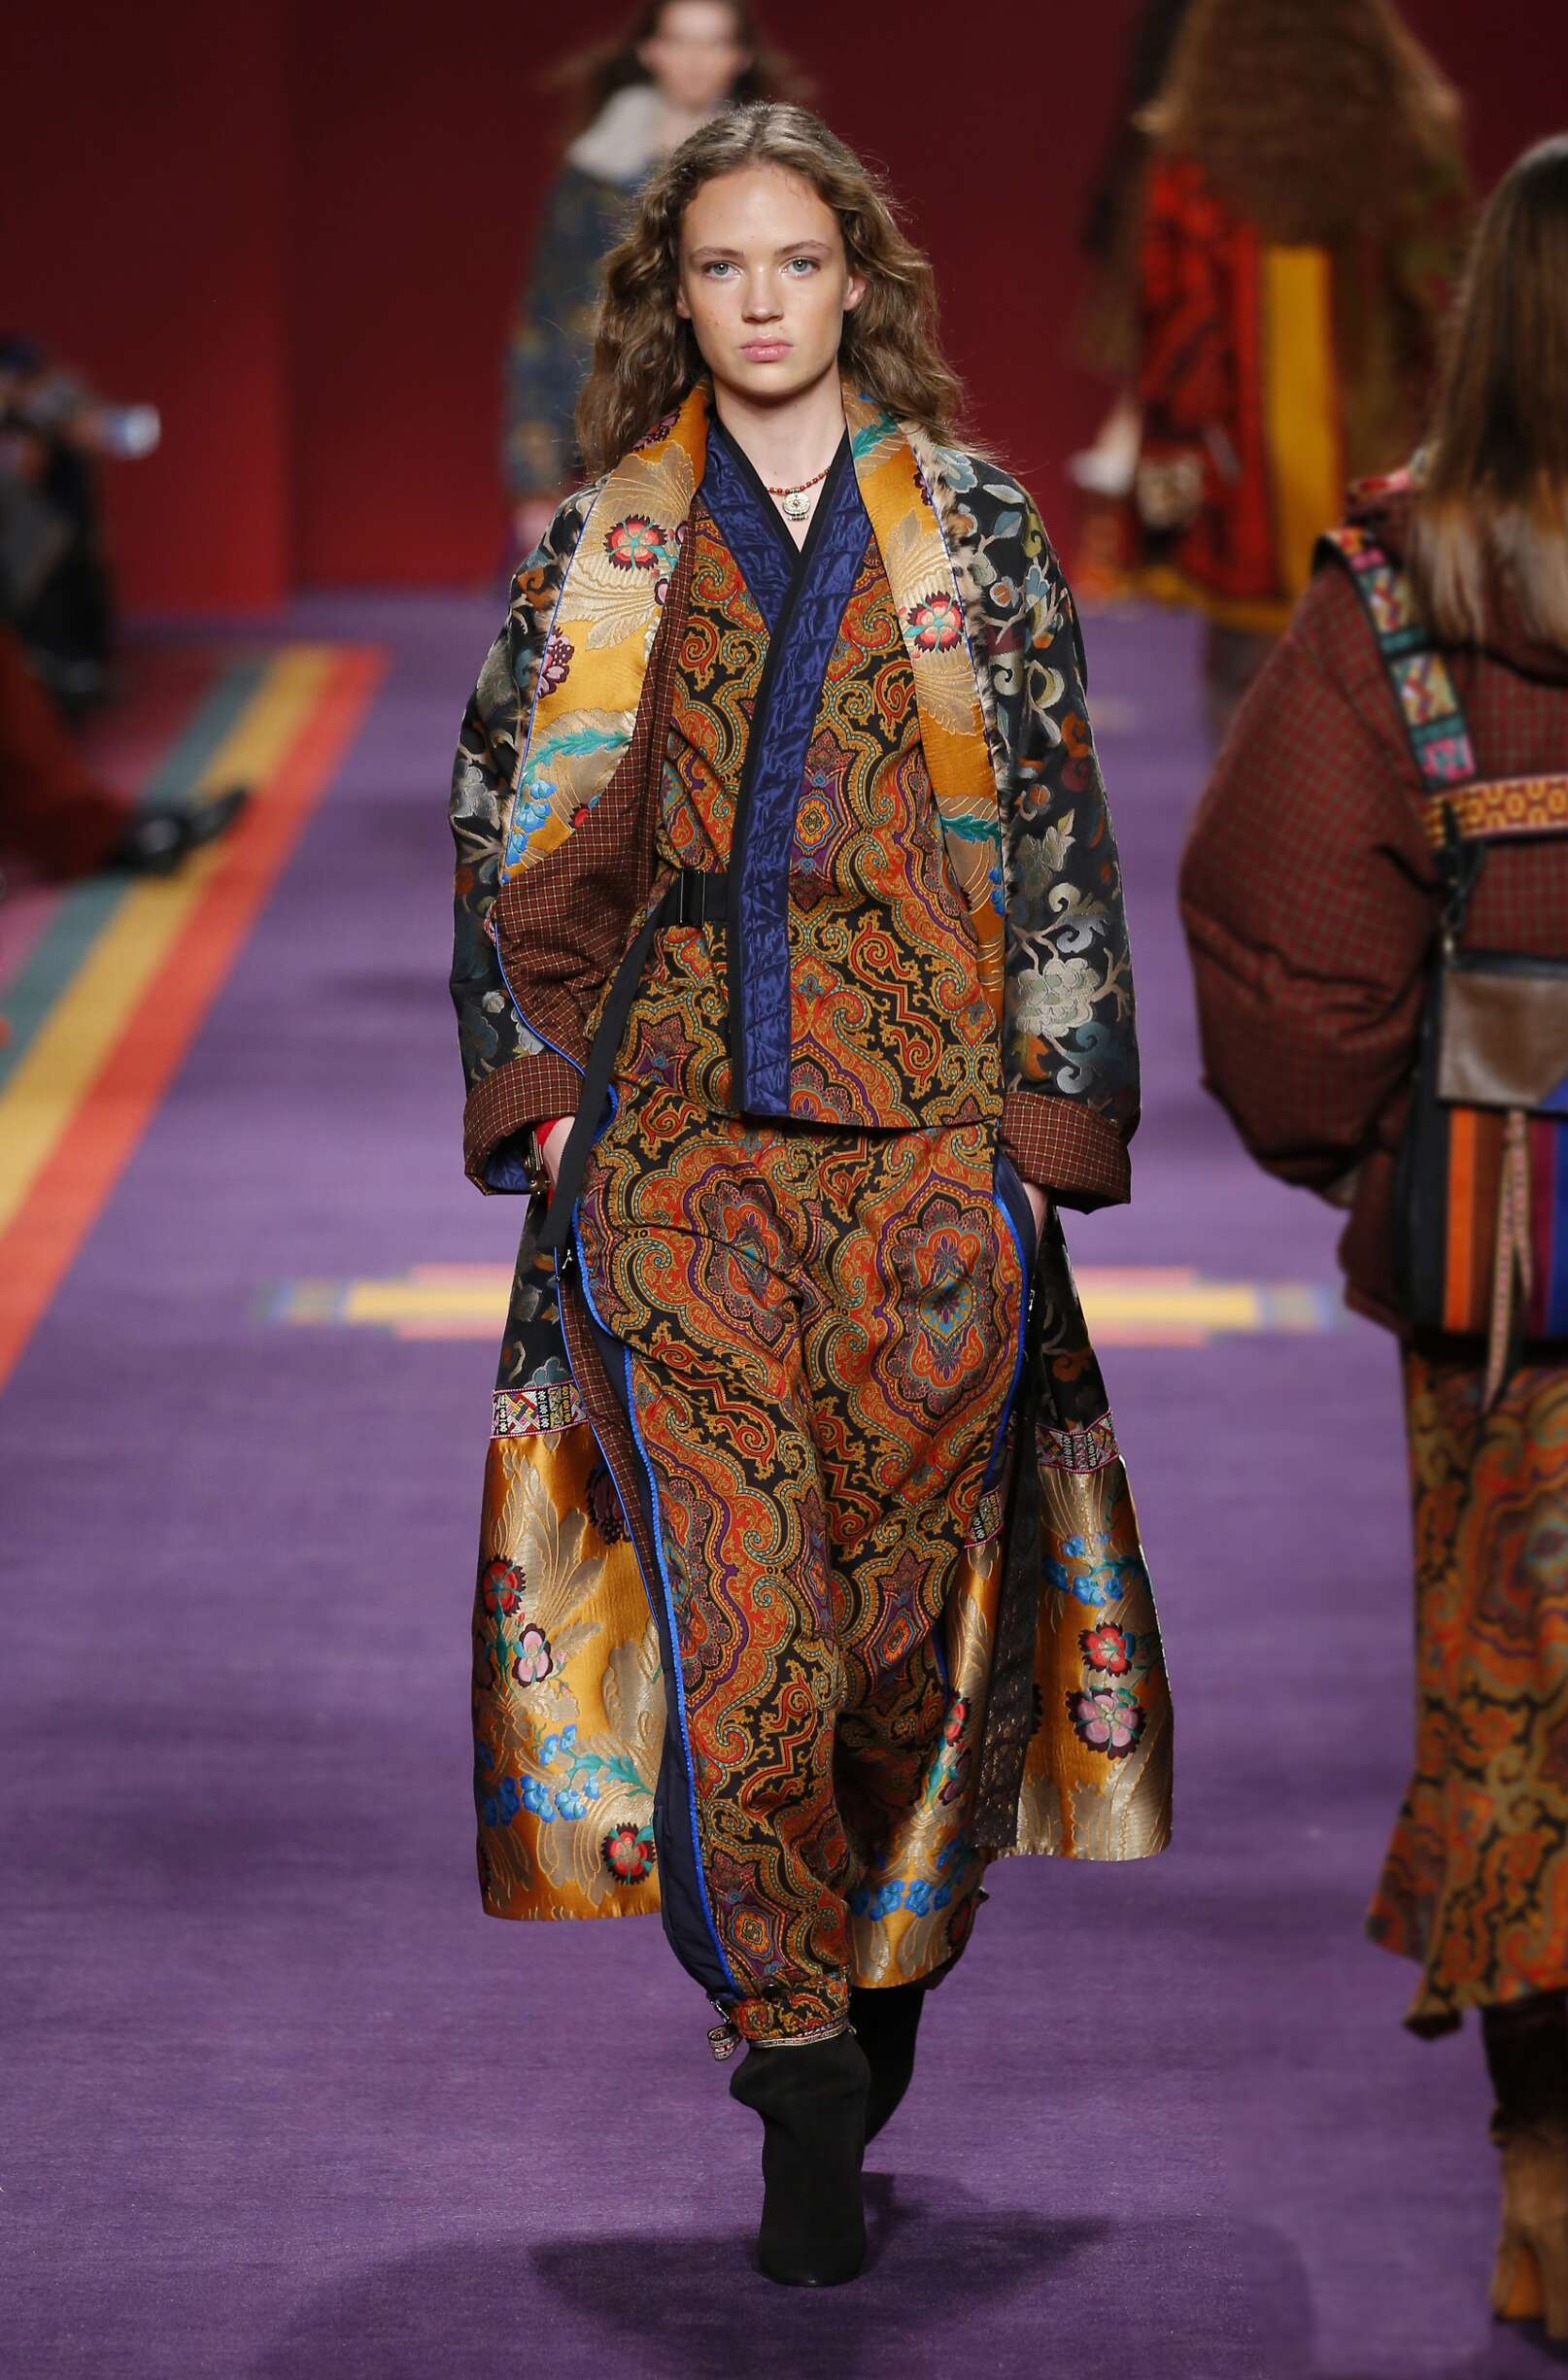 Etro Woman Milan Fashion Week